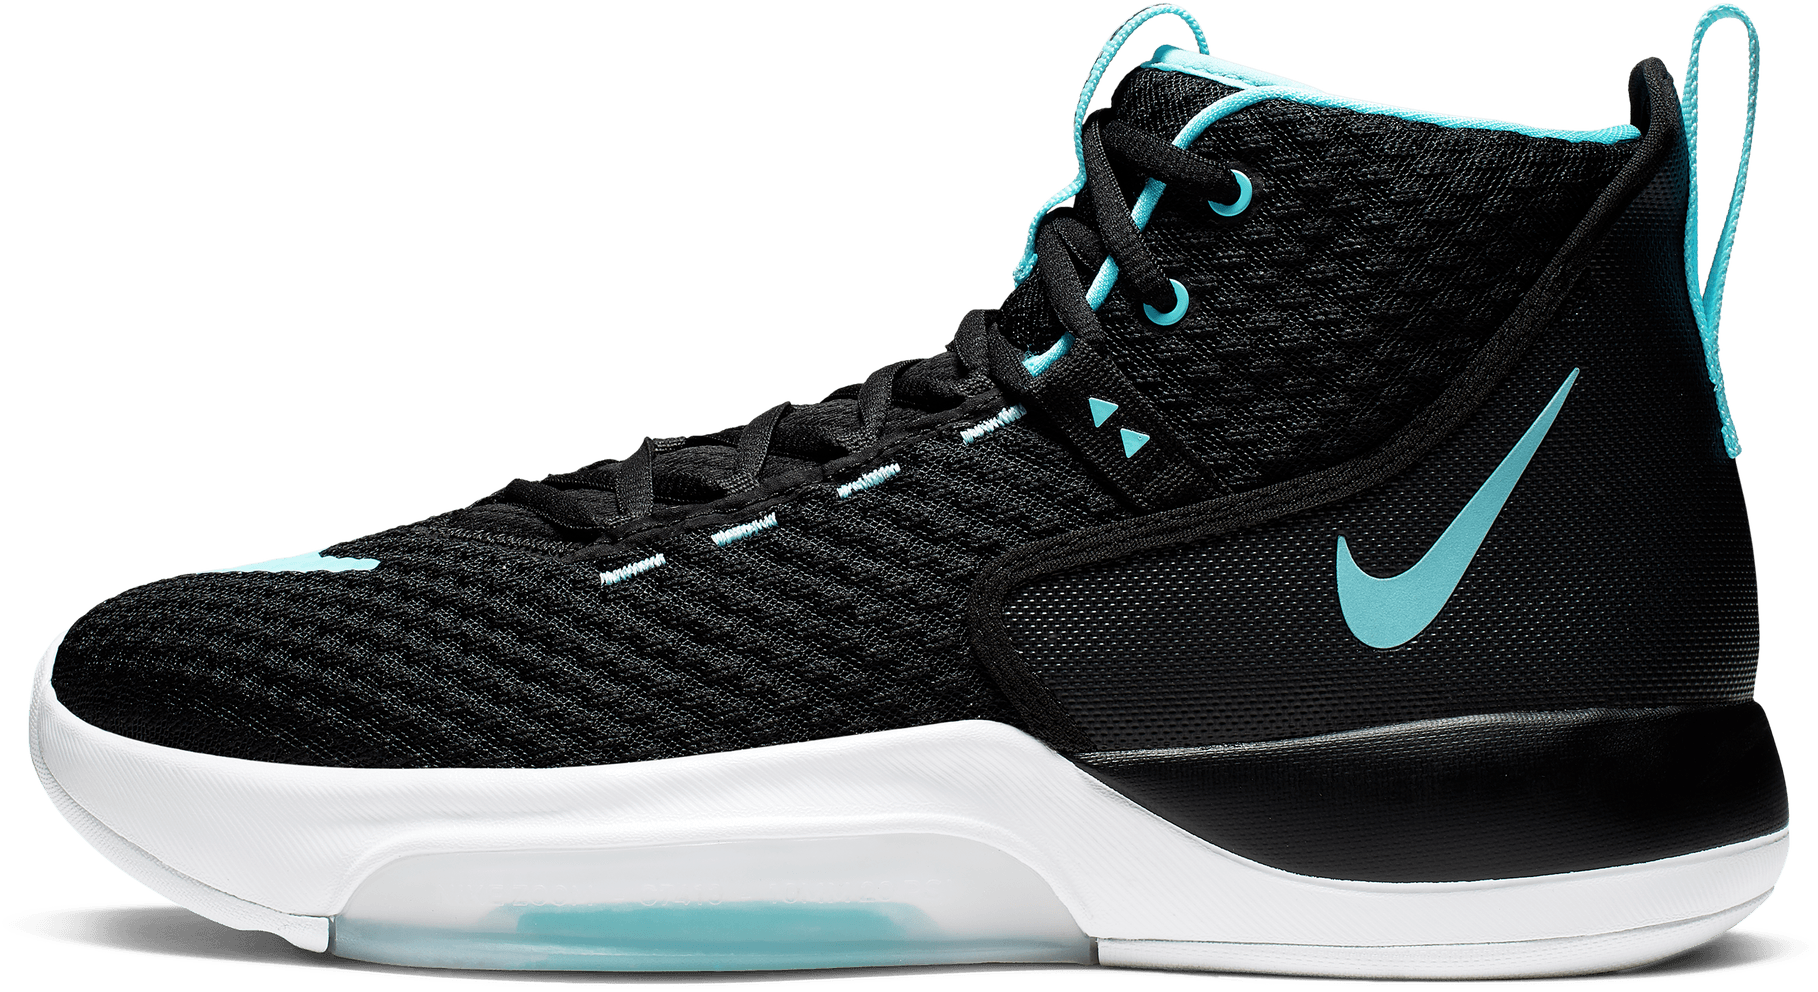 Nike Zoom Rize Performance Review